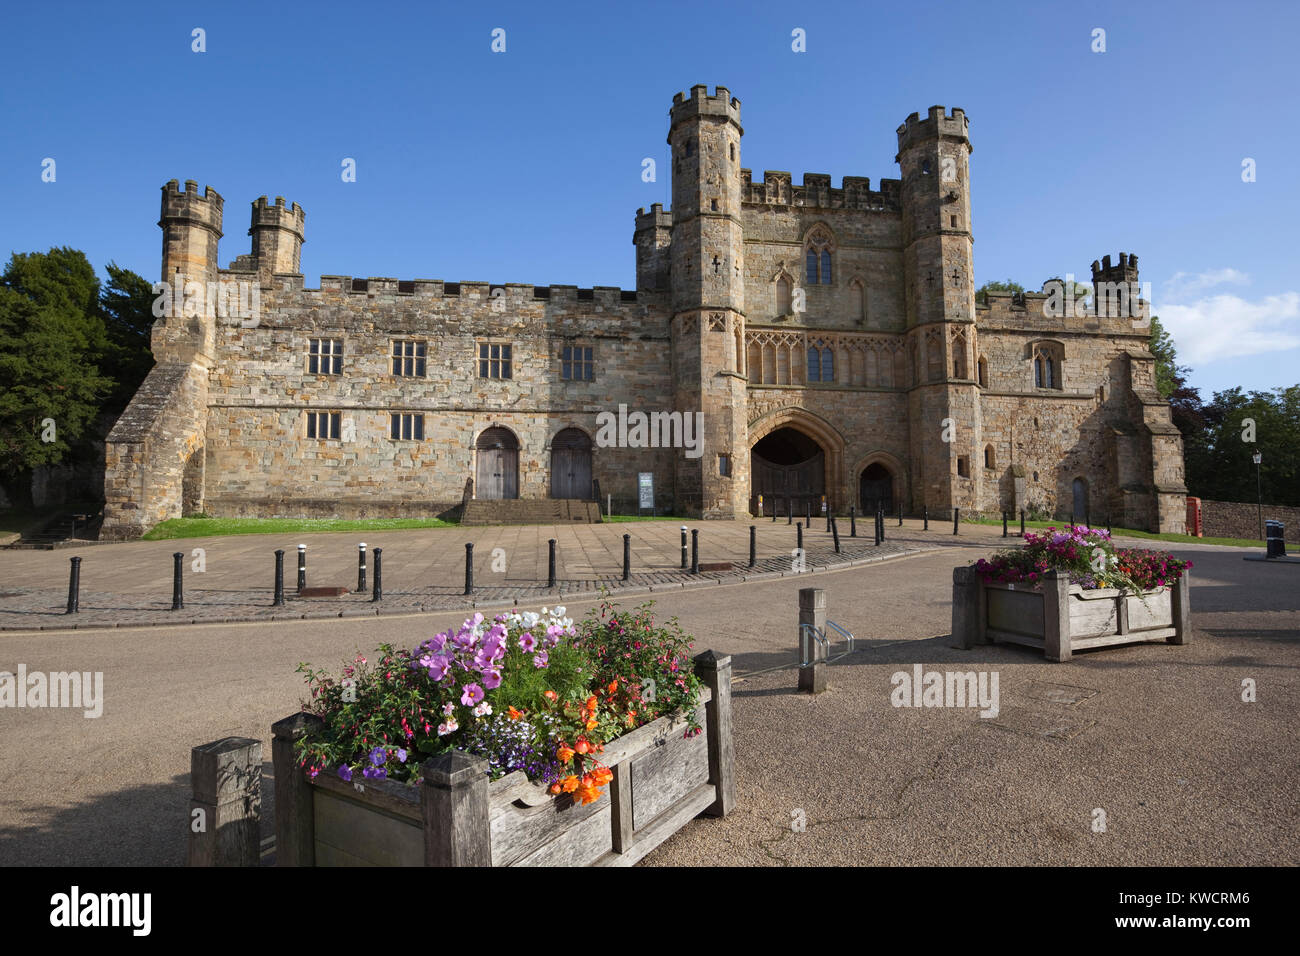 BATTLE, EAST SUSSEX, ENGLAND: Exterior of Battle Abbey built on the site of the Battle of Hastings in 1066 - Stock Image